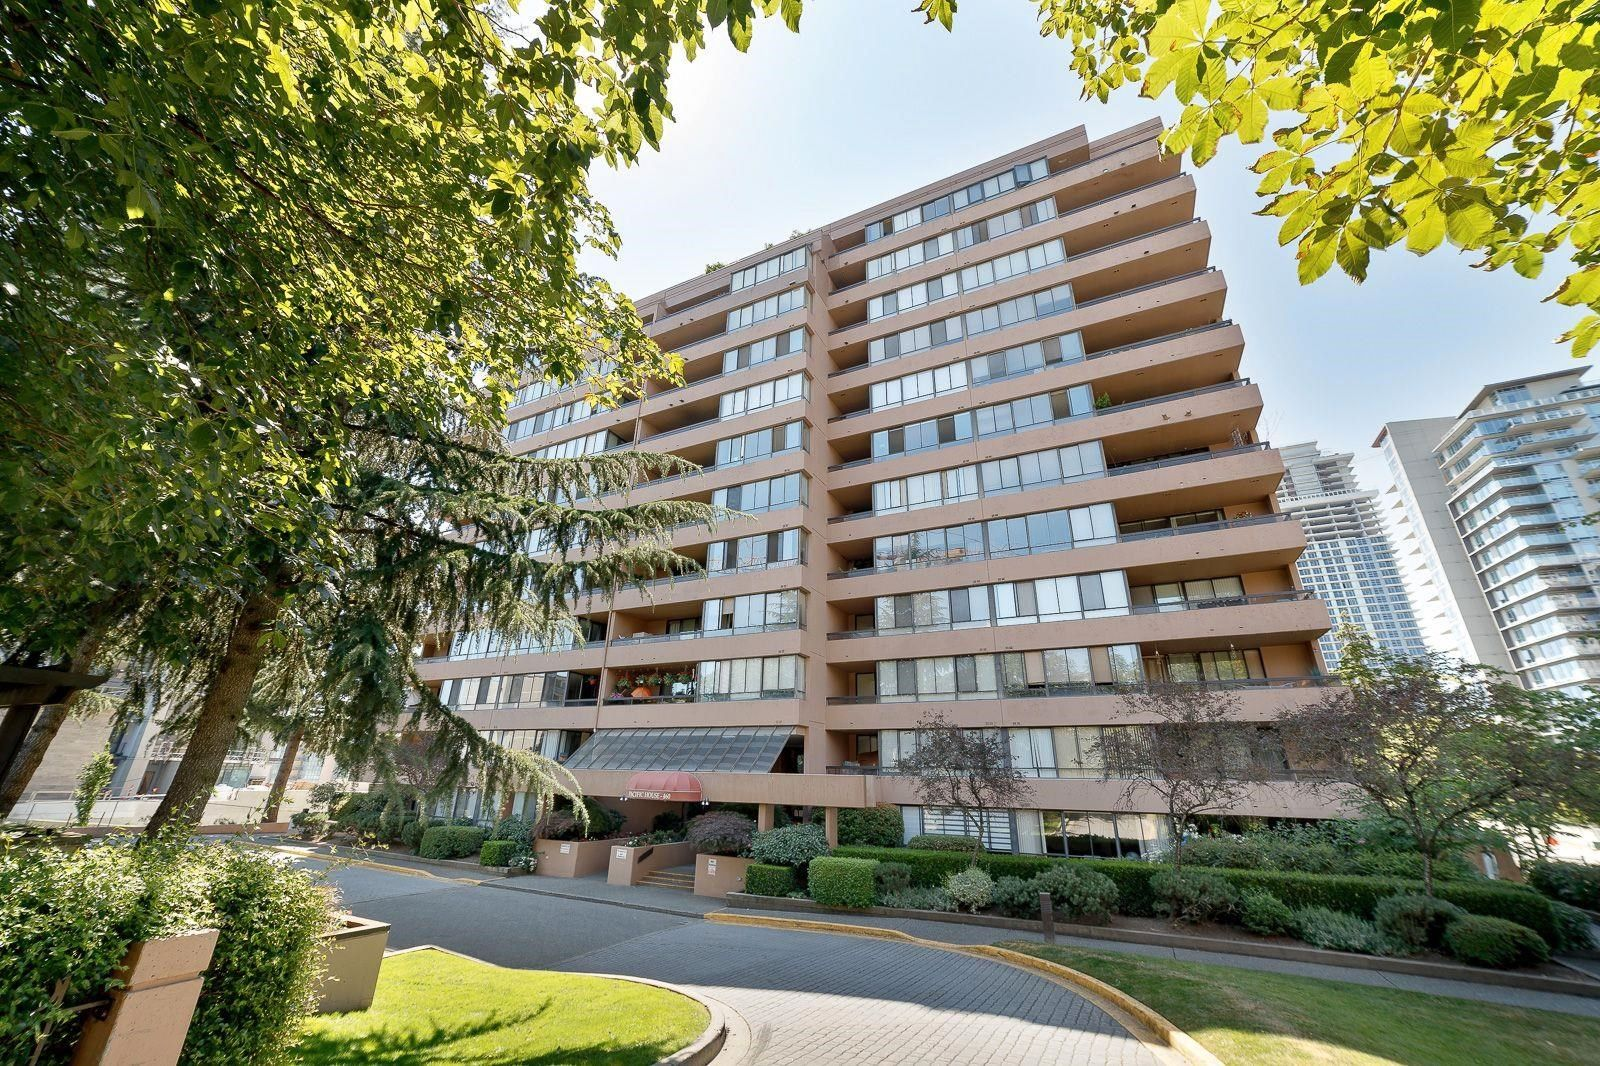 """Main Photo: 609 460 WESTVIEW Street in Coquitlam: Coquitlam West Condo for sale in """"PACIFIC HOUSE"""" : MLS®# R2610308"""